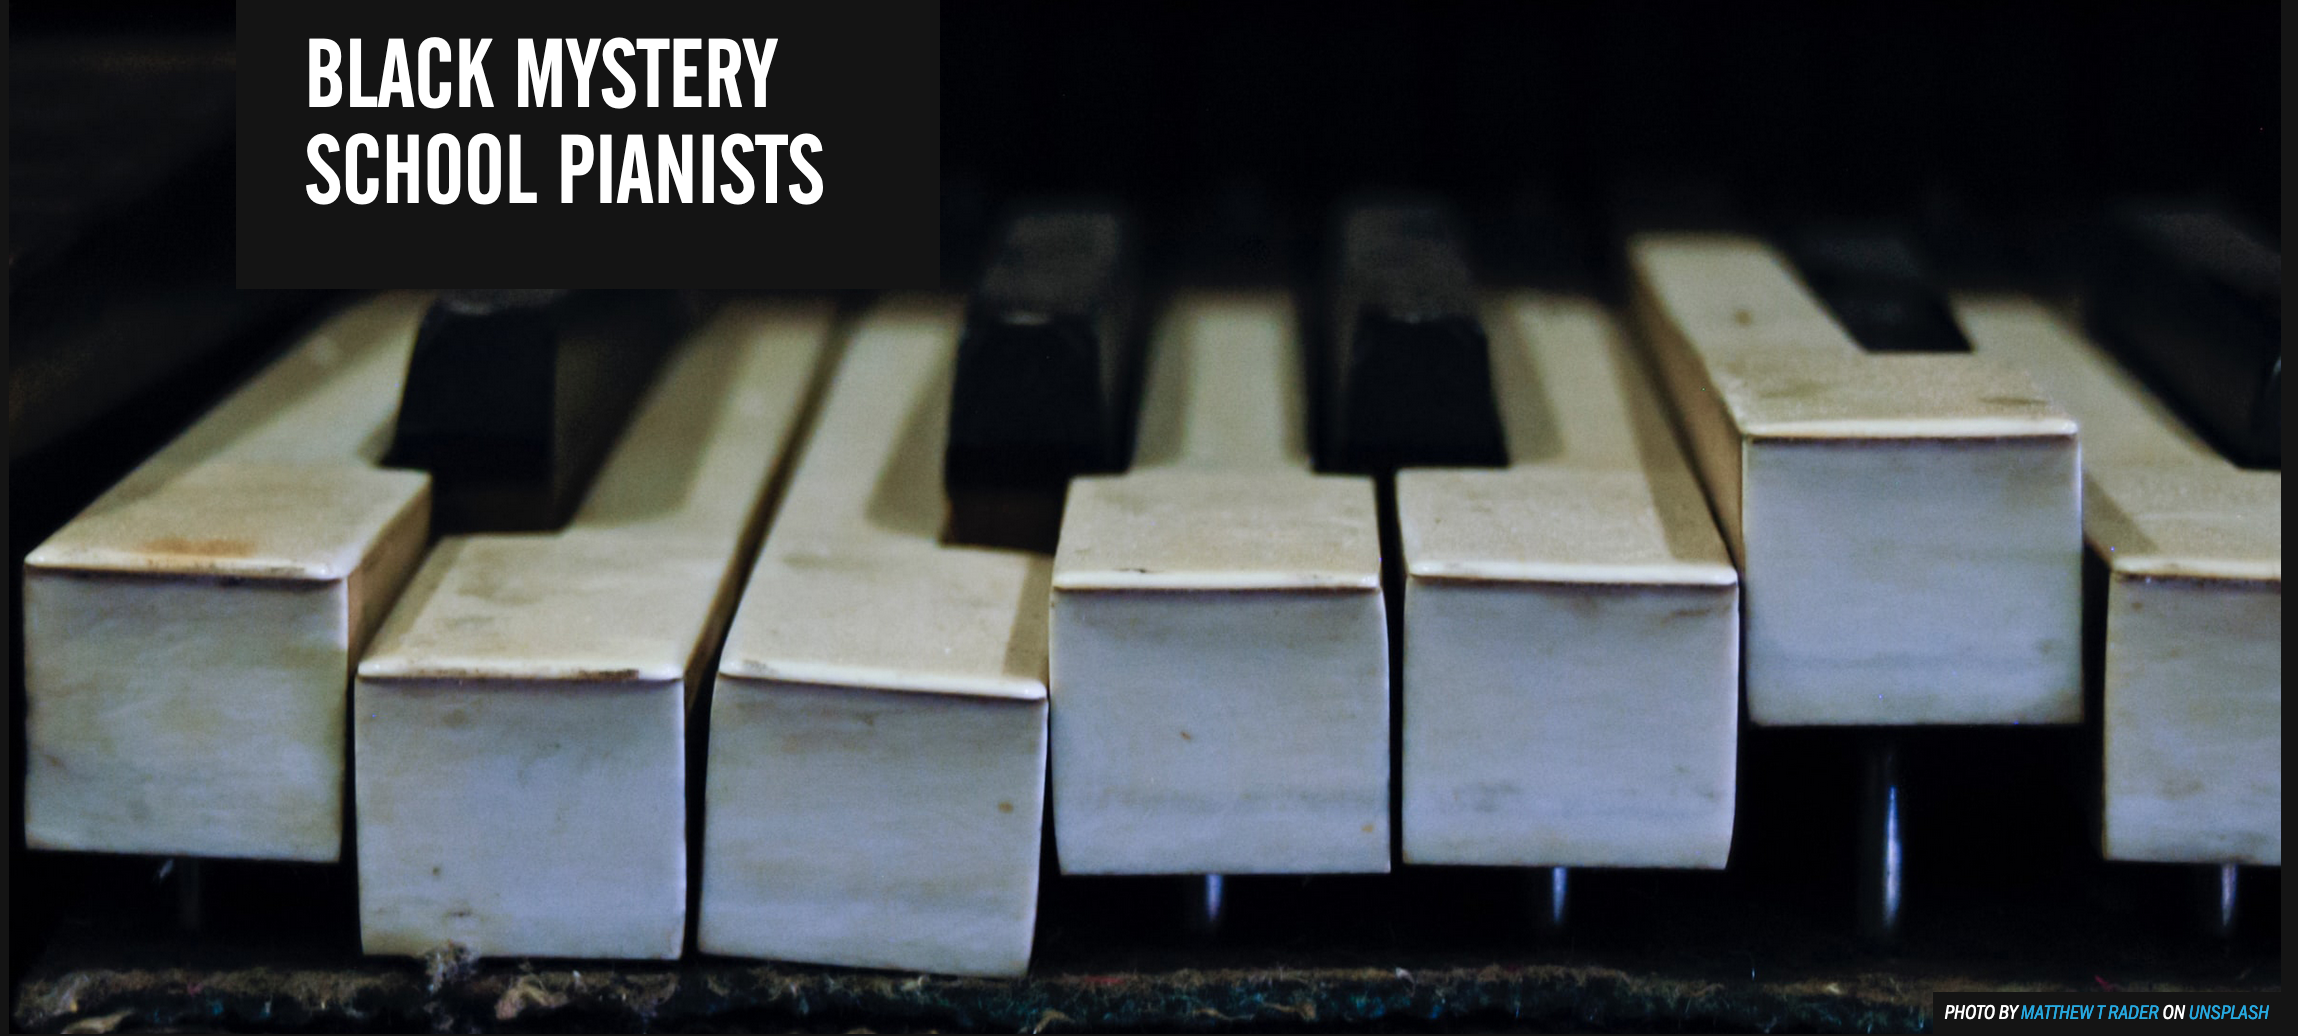 Responding to the Black Mystery School Pianists